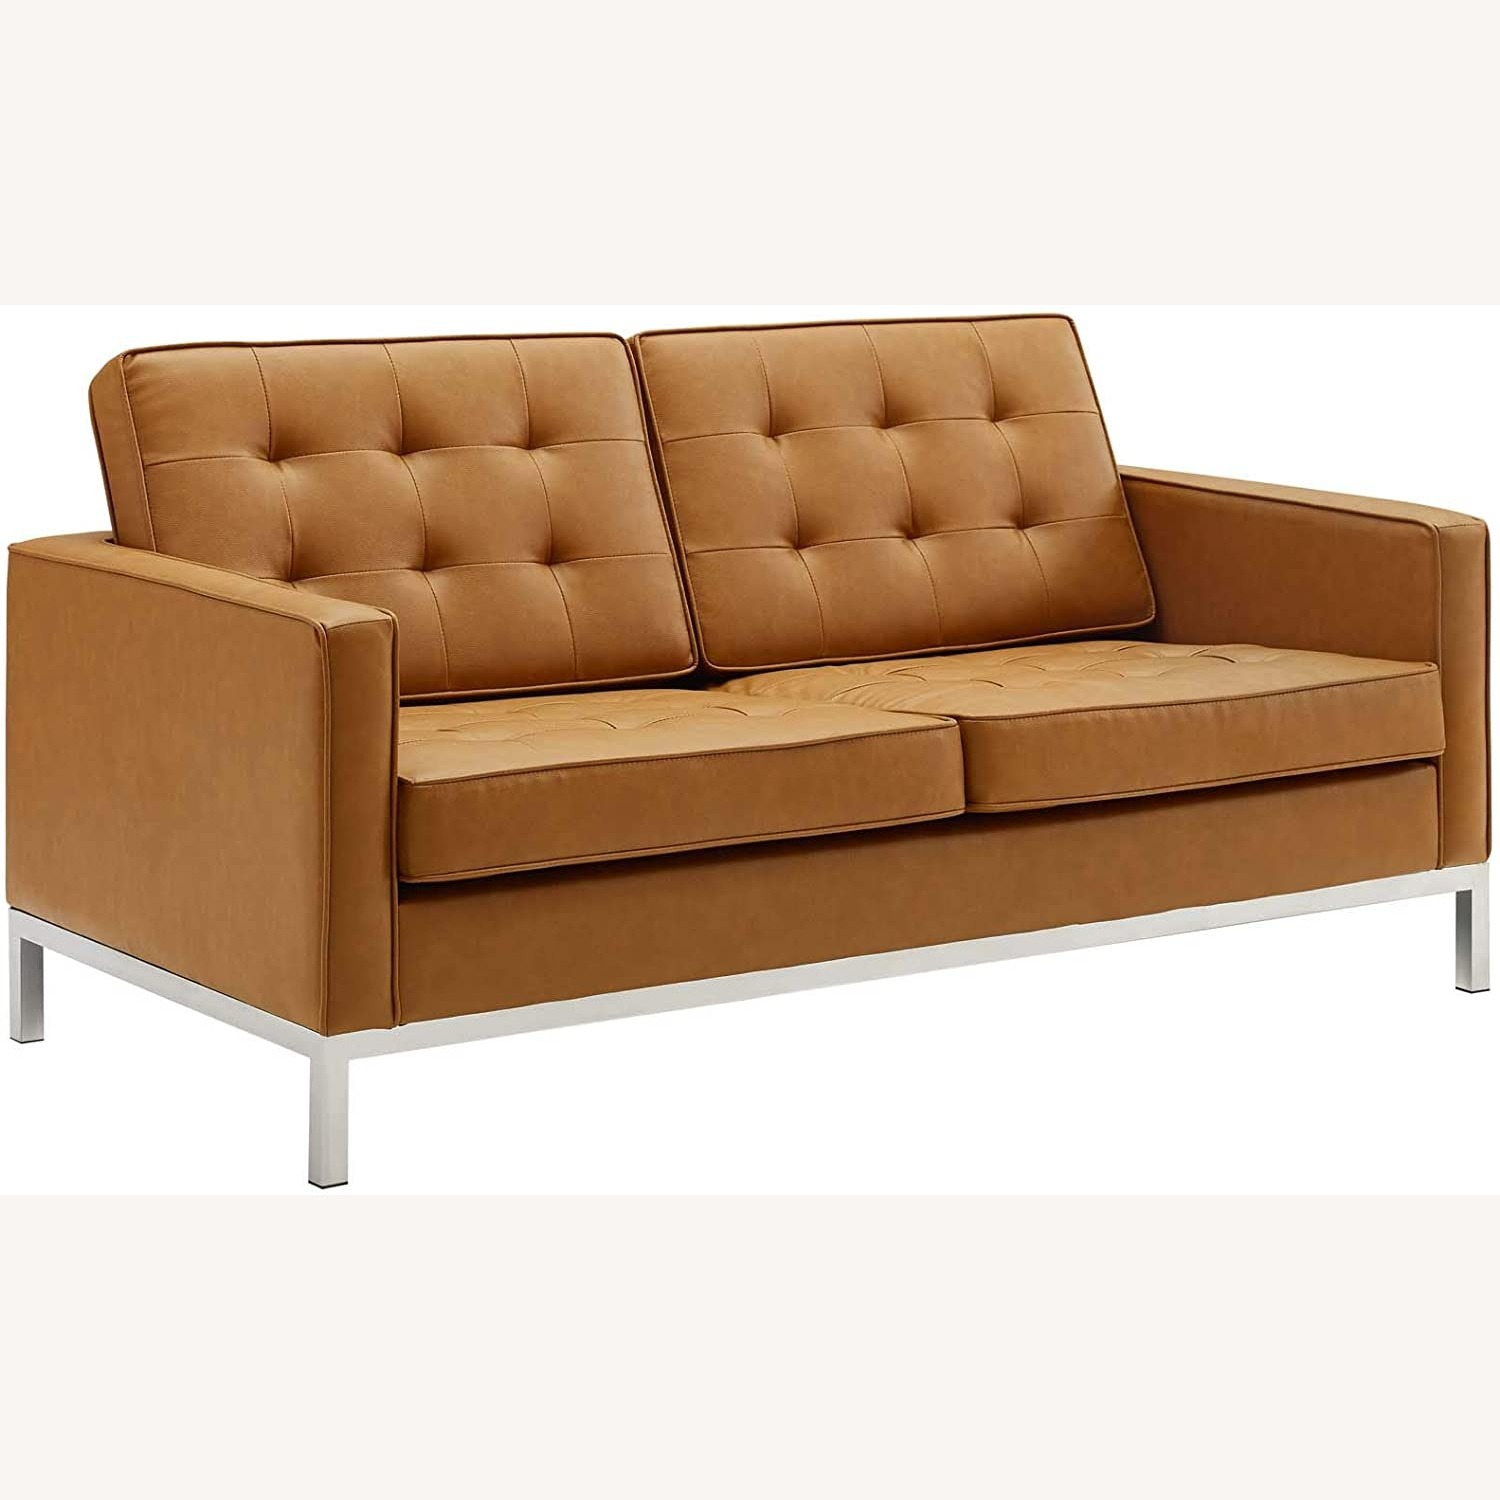 Modern Loveseat In Silver Tan Faux Leather Finish - image-0